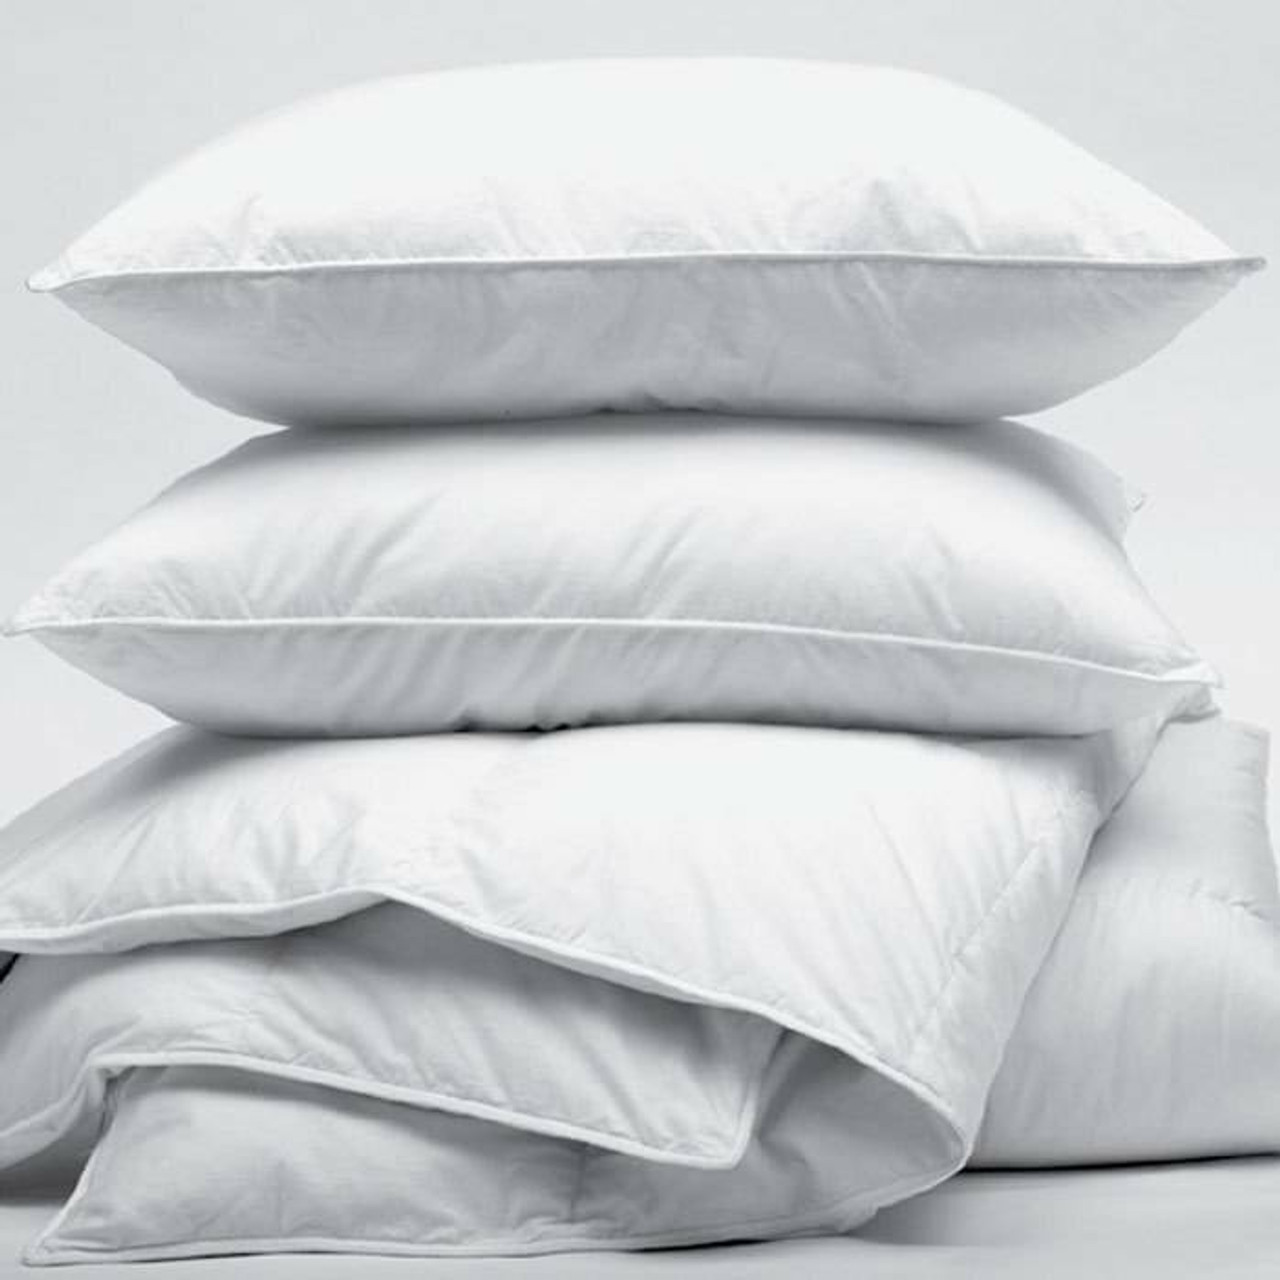 Ganesh Mills or Oxford Super Blend Ganesh Mills or Oxford or Pillow w/ Micro Gel or pack of 12